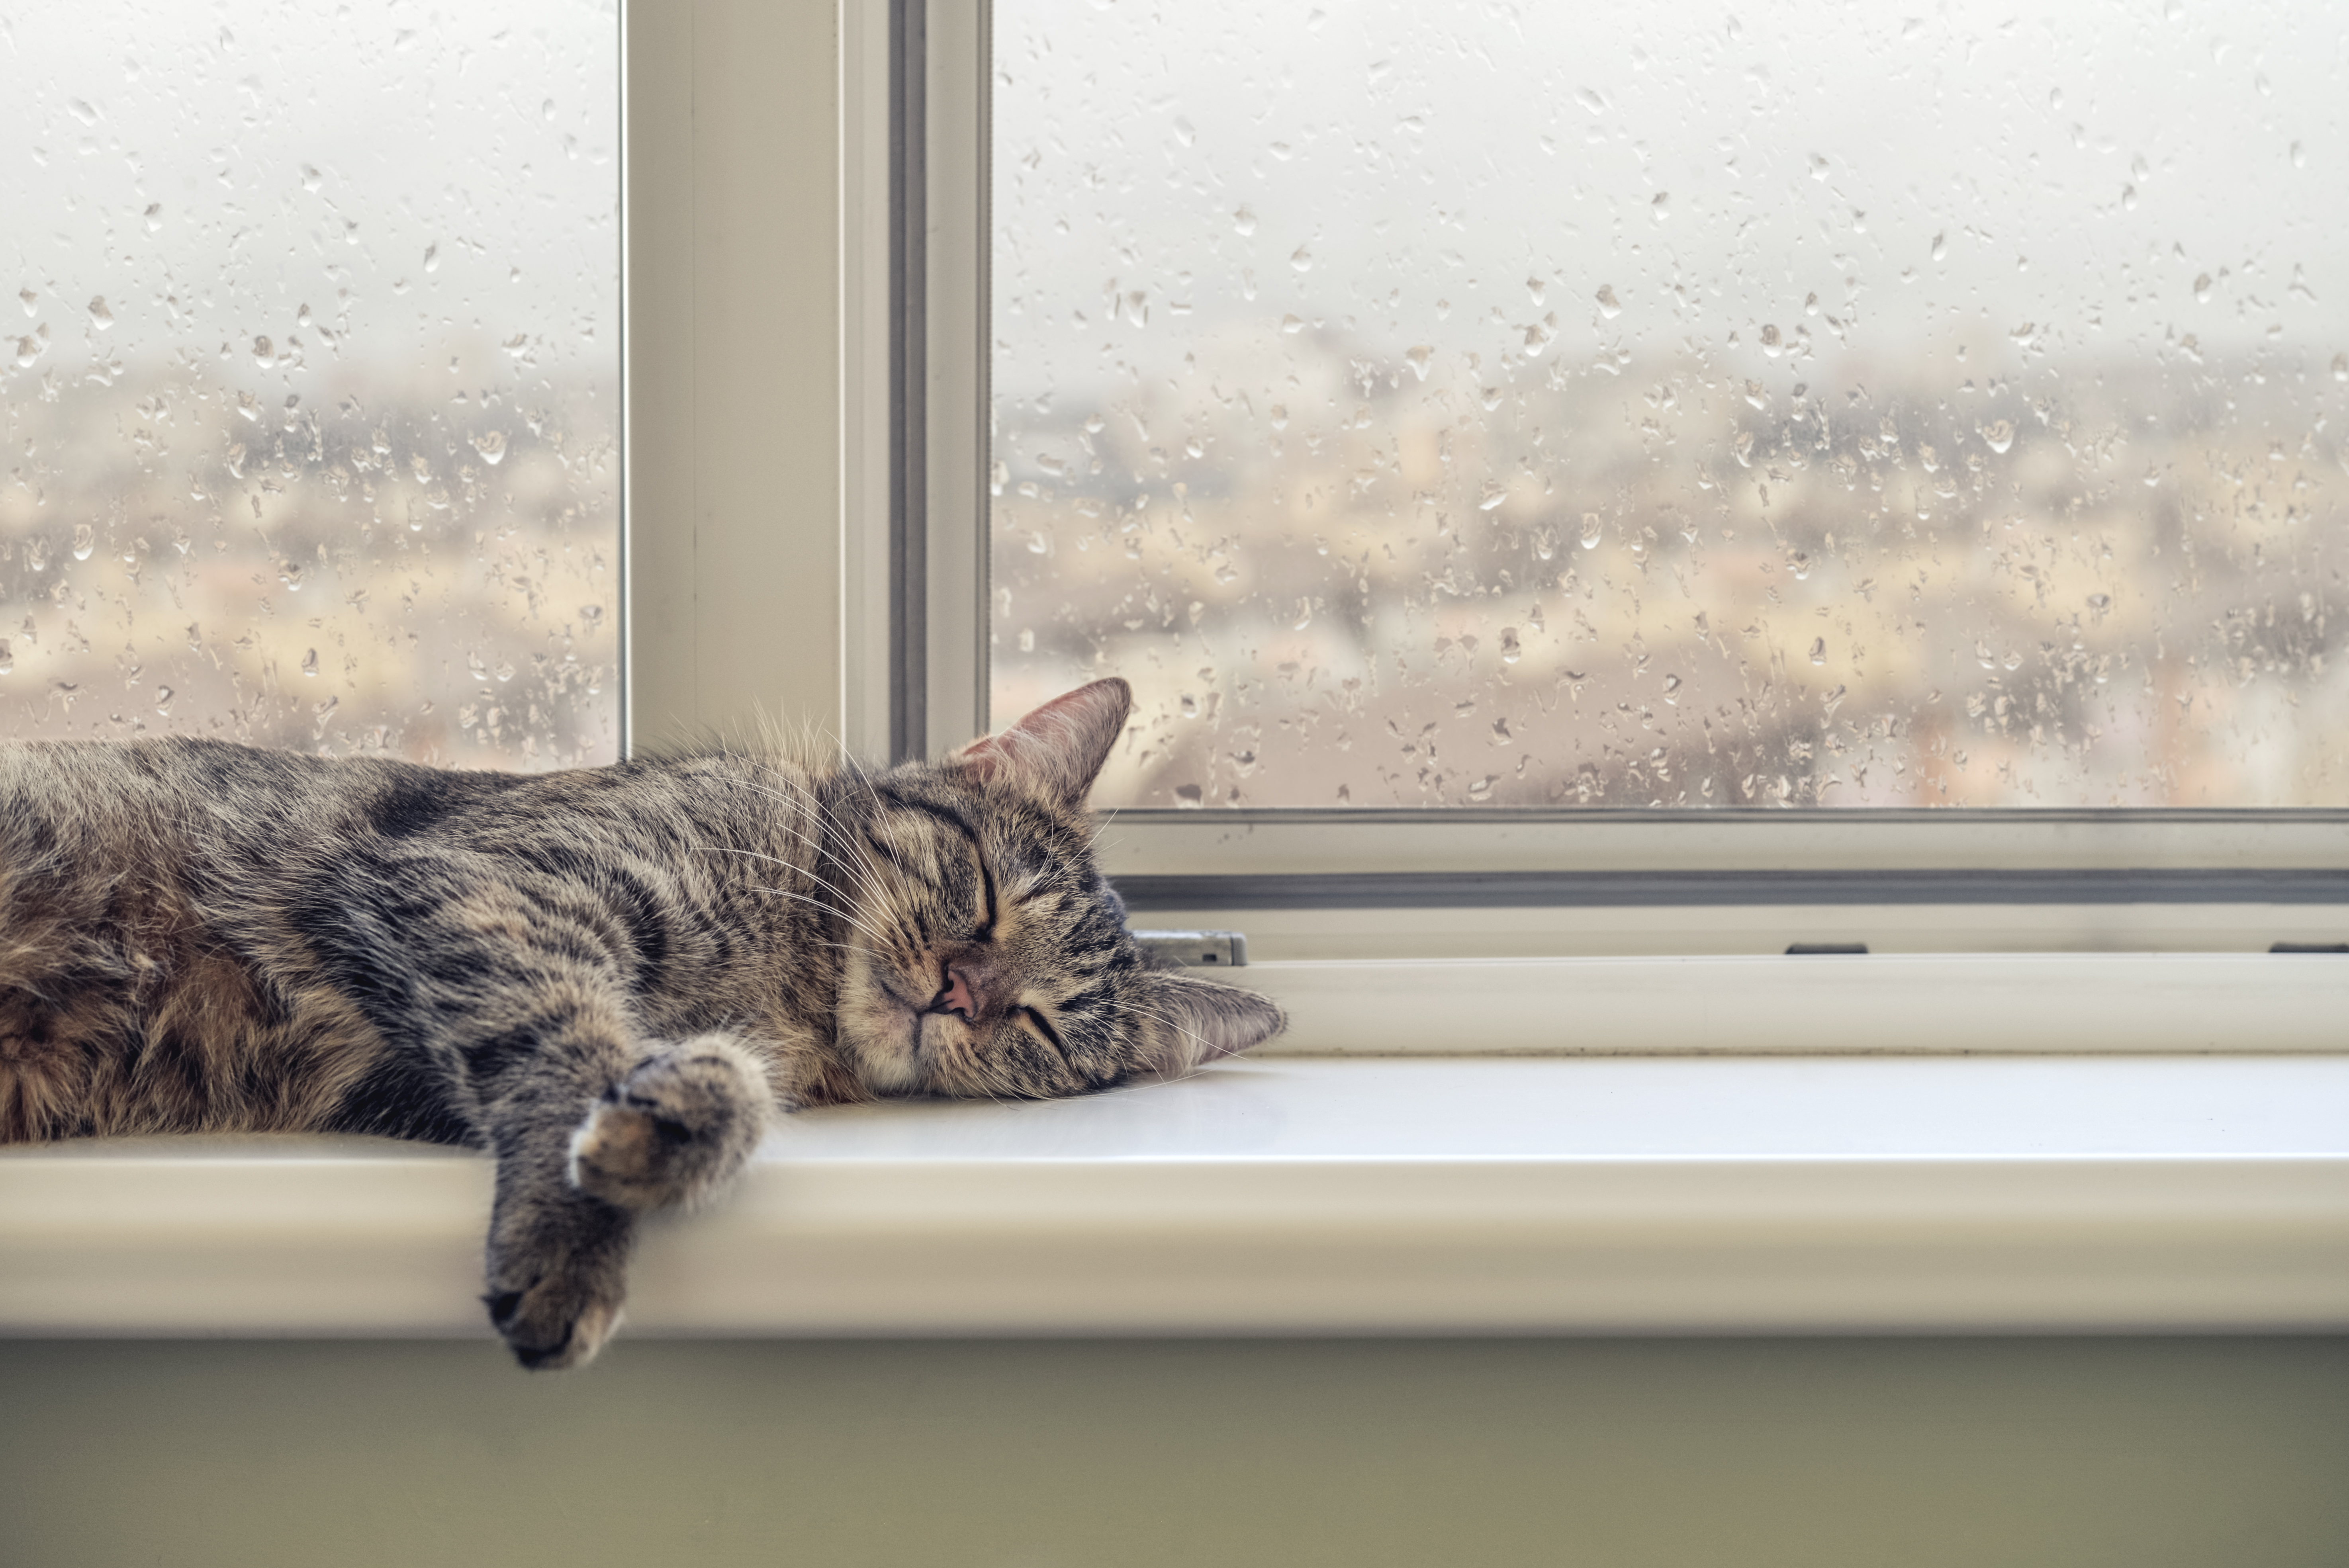 A cute cat sleeps on the window sill during a rainy day